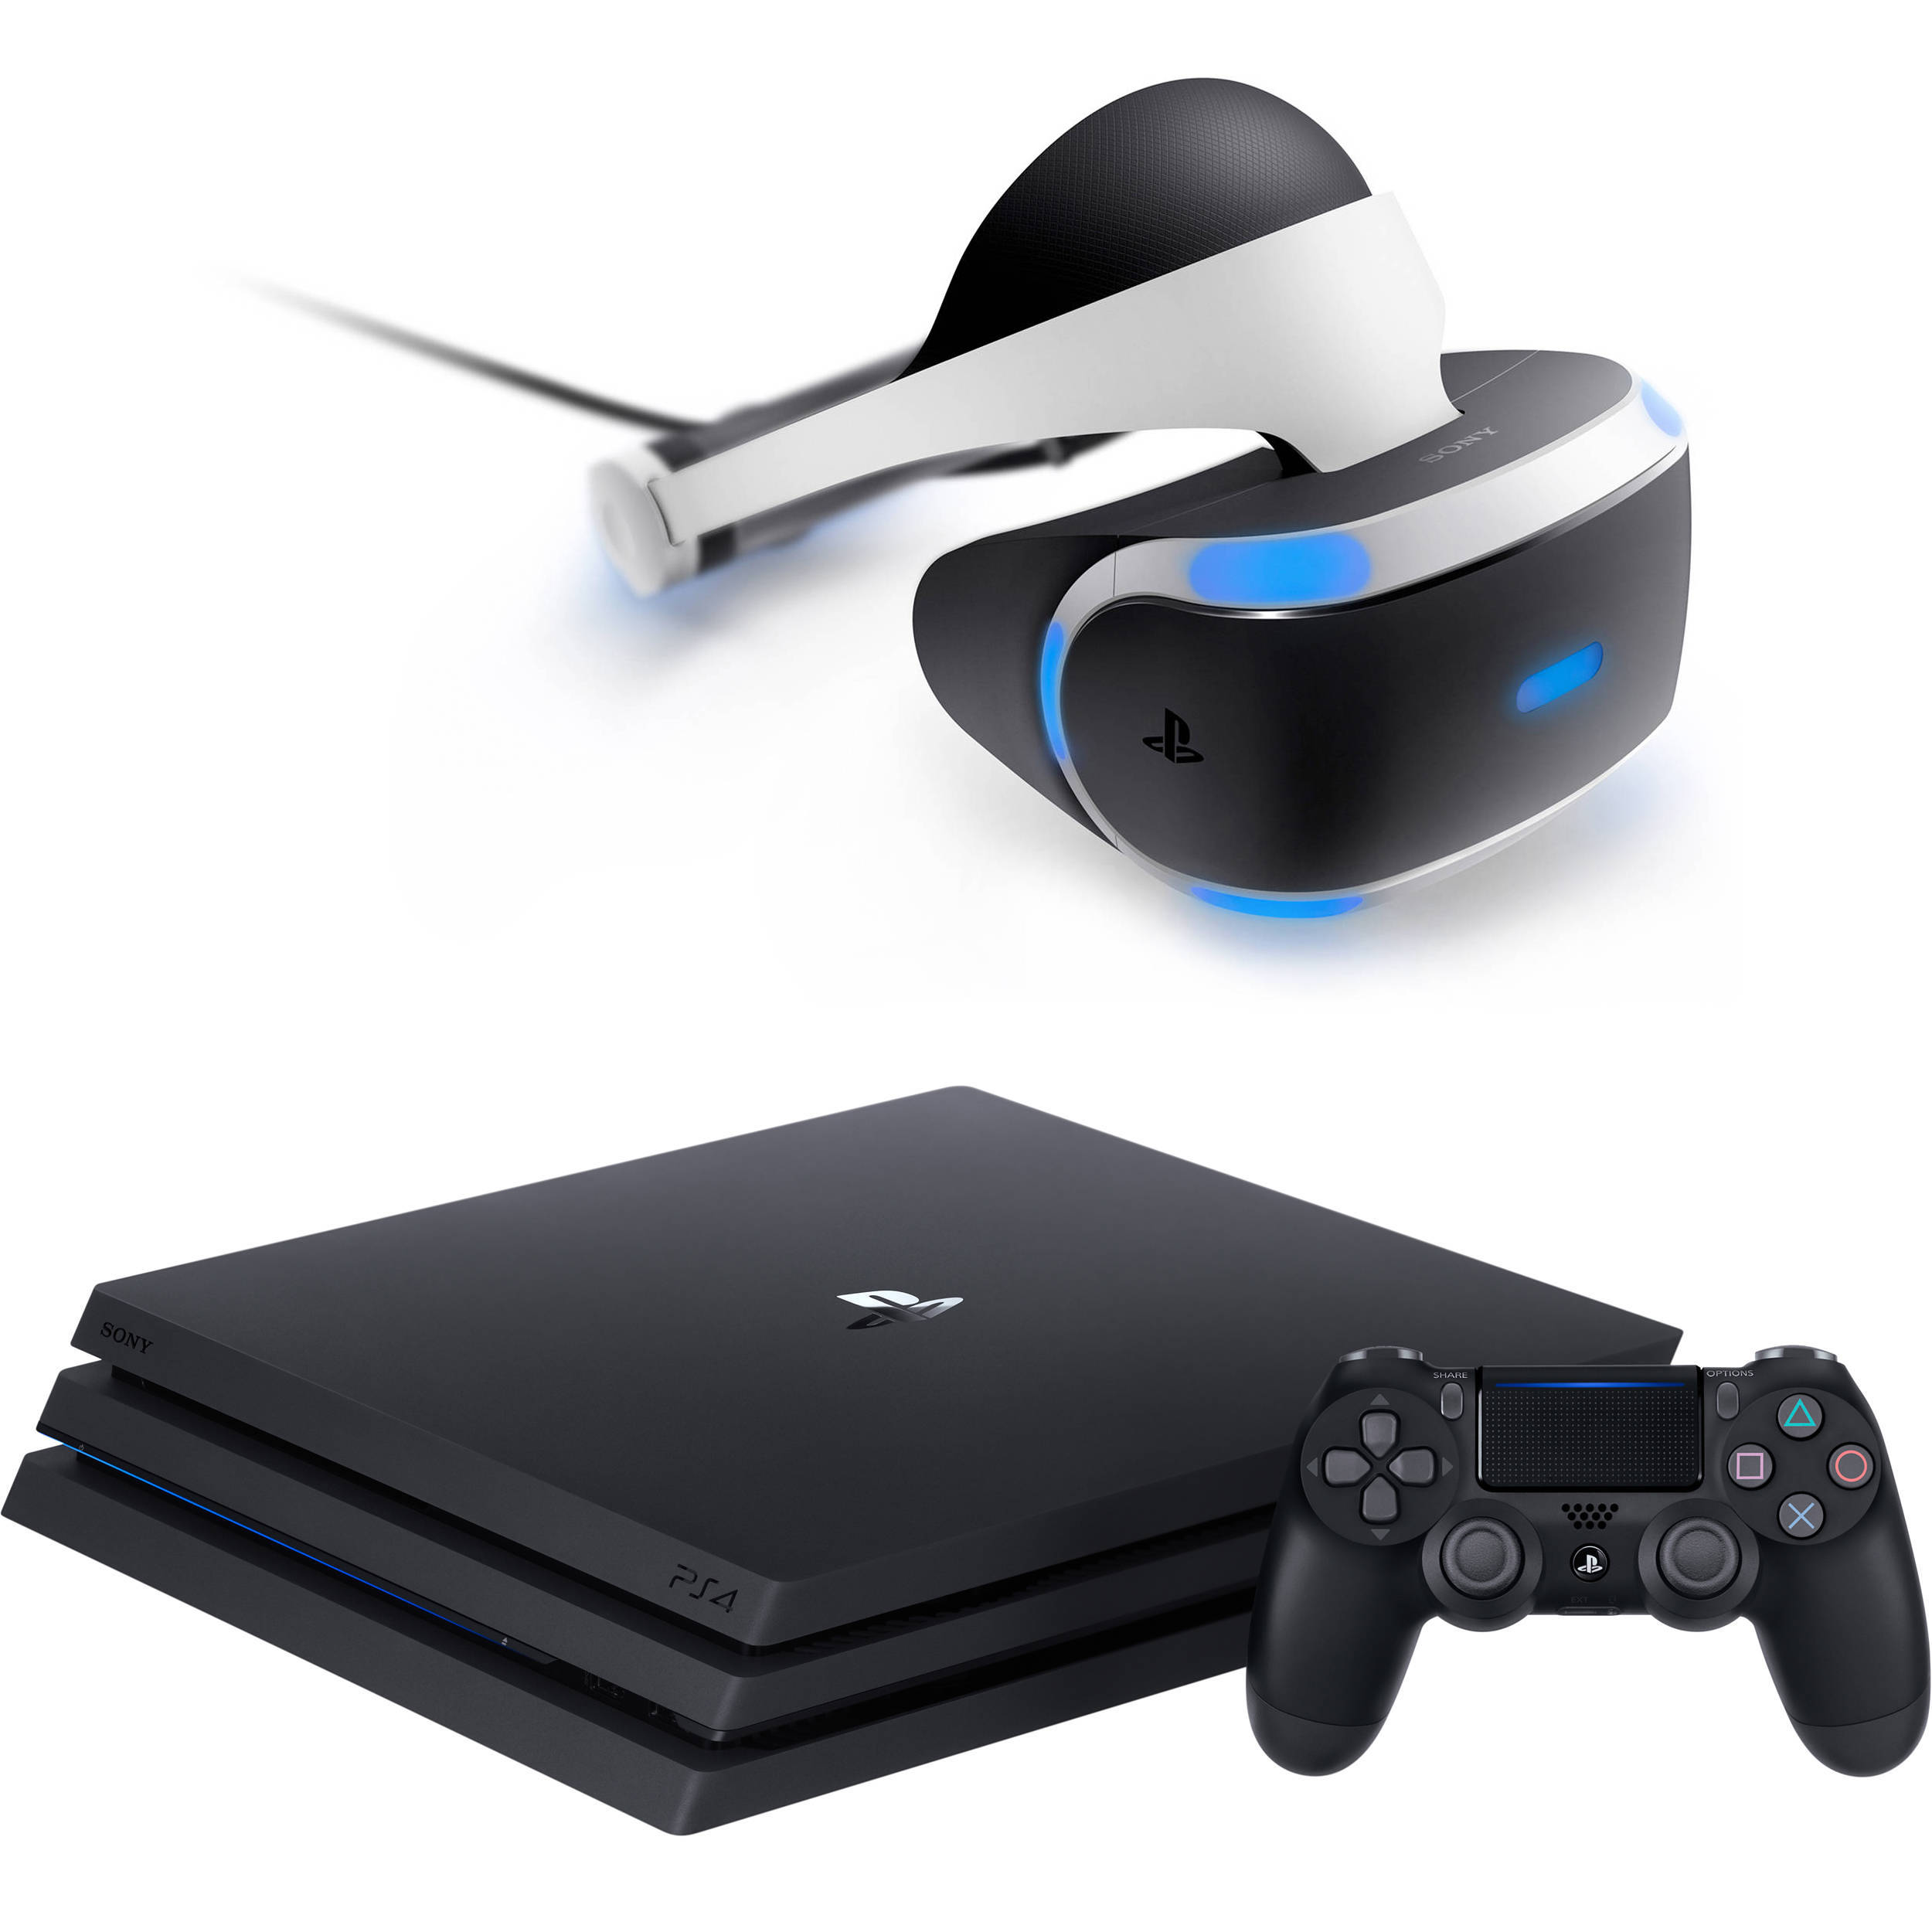 sony playstation 4. sony playstation 4 pro gaming console \u0026 vr headset kit playstation